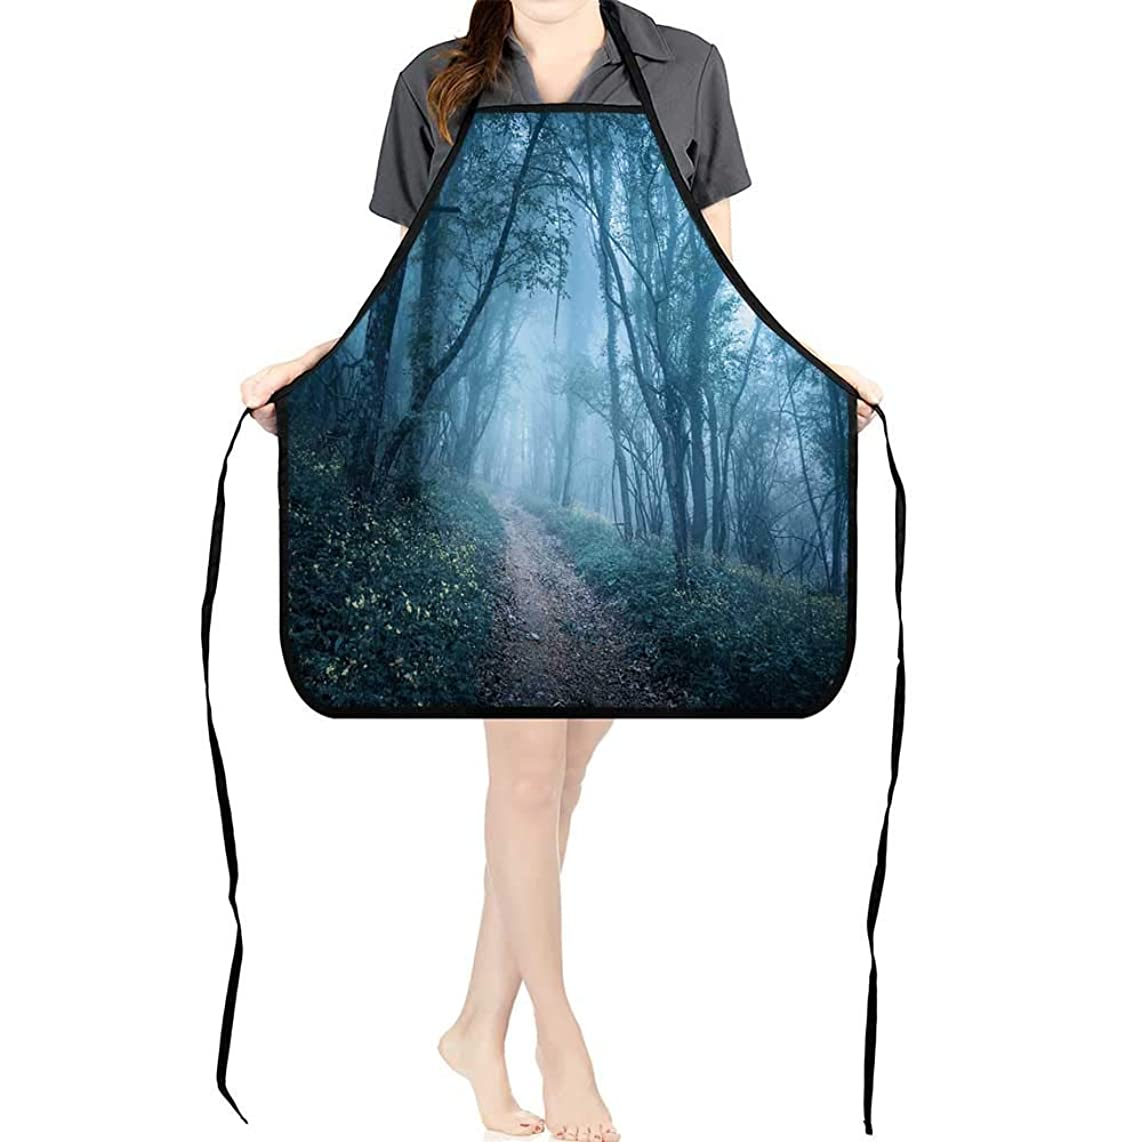 Jiahong Pan Men and Women Kitchen Apron Trail Through a Mysterious Dark Forest in Fog with Green Leaves and Flowers Spring Morning for Cooking, Baking, Crafting, Gardening, BBQK17.7xG26.6xB9